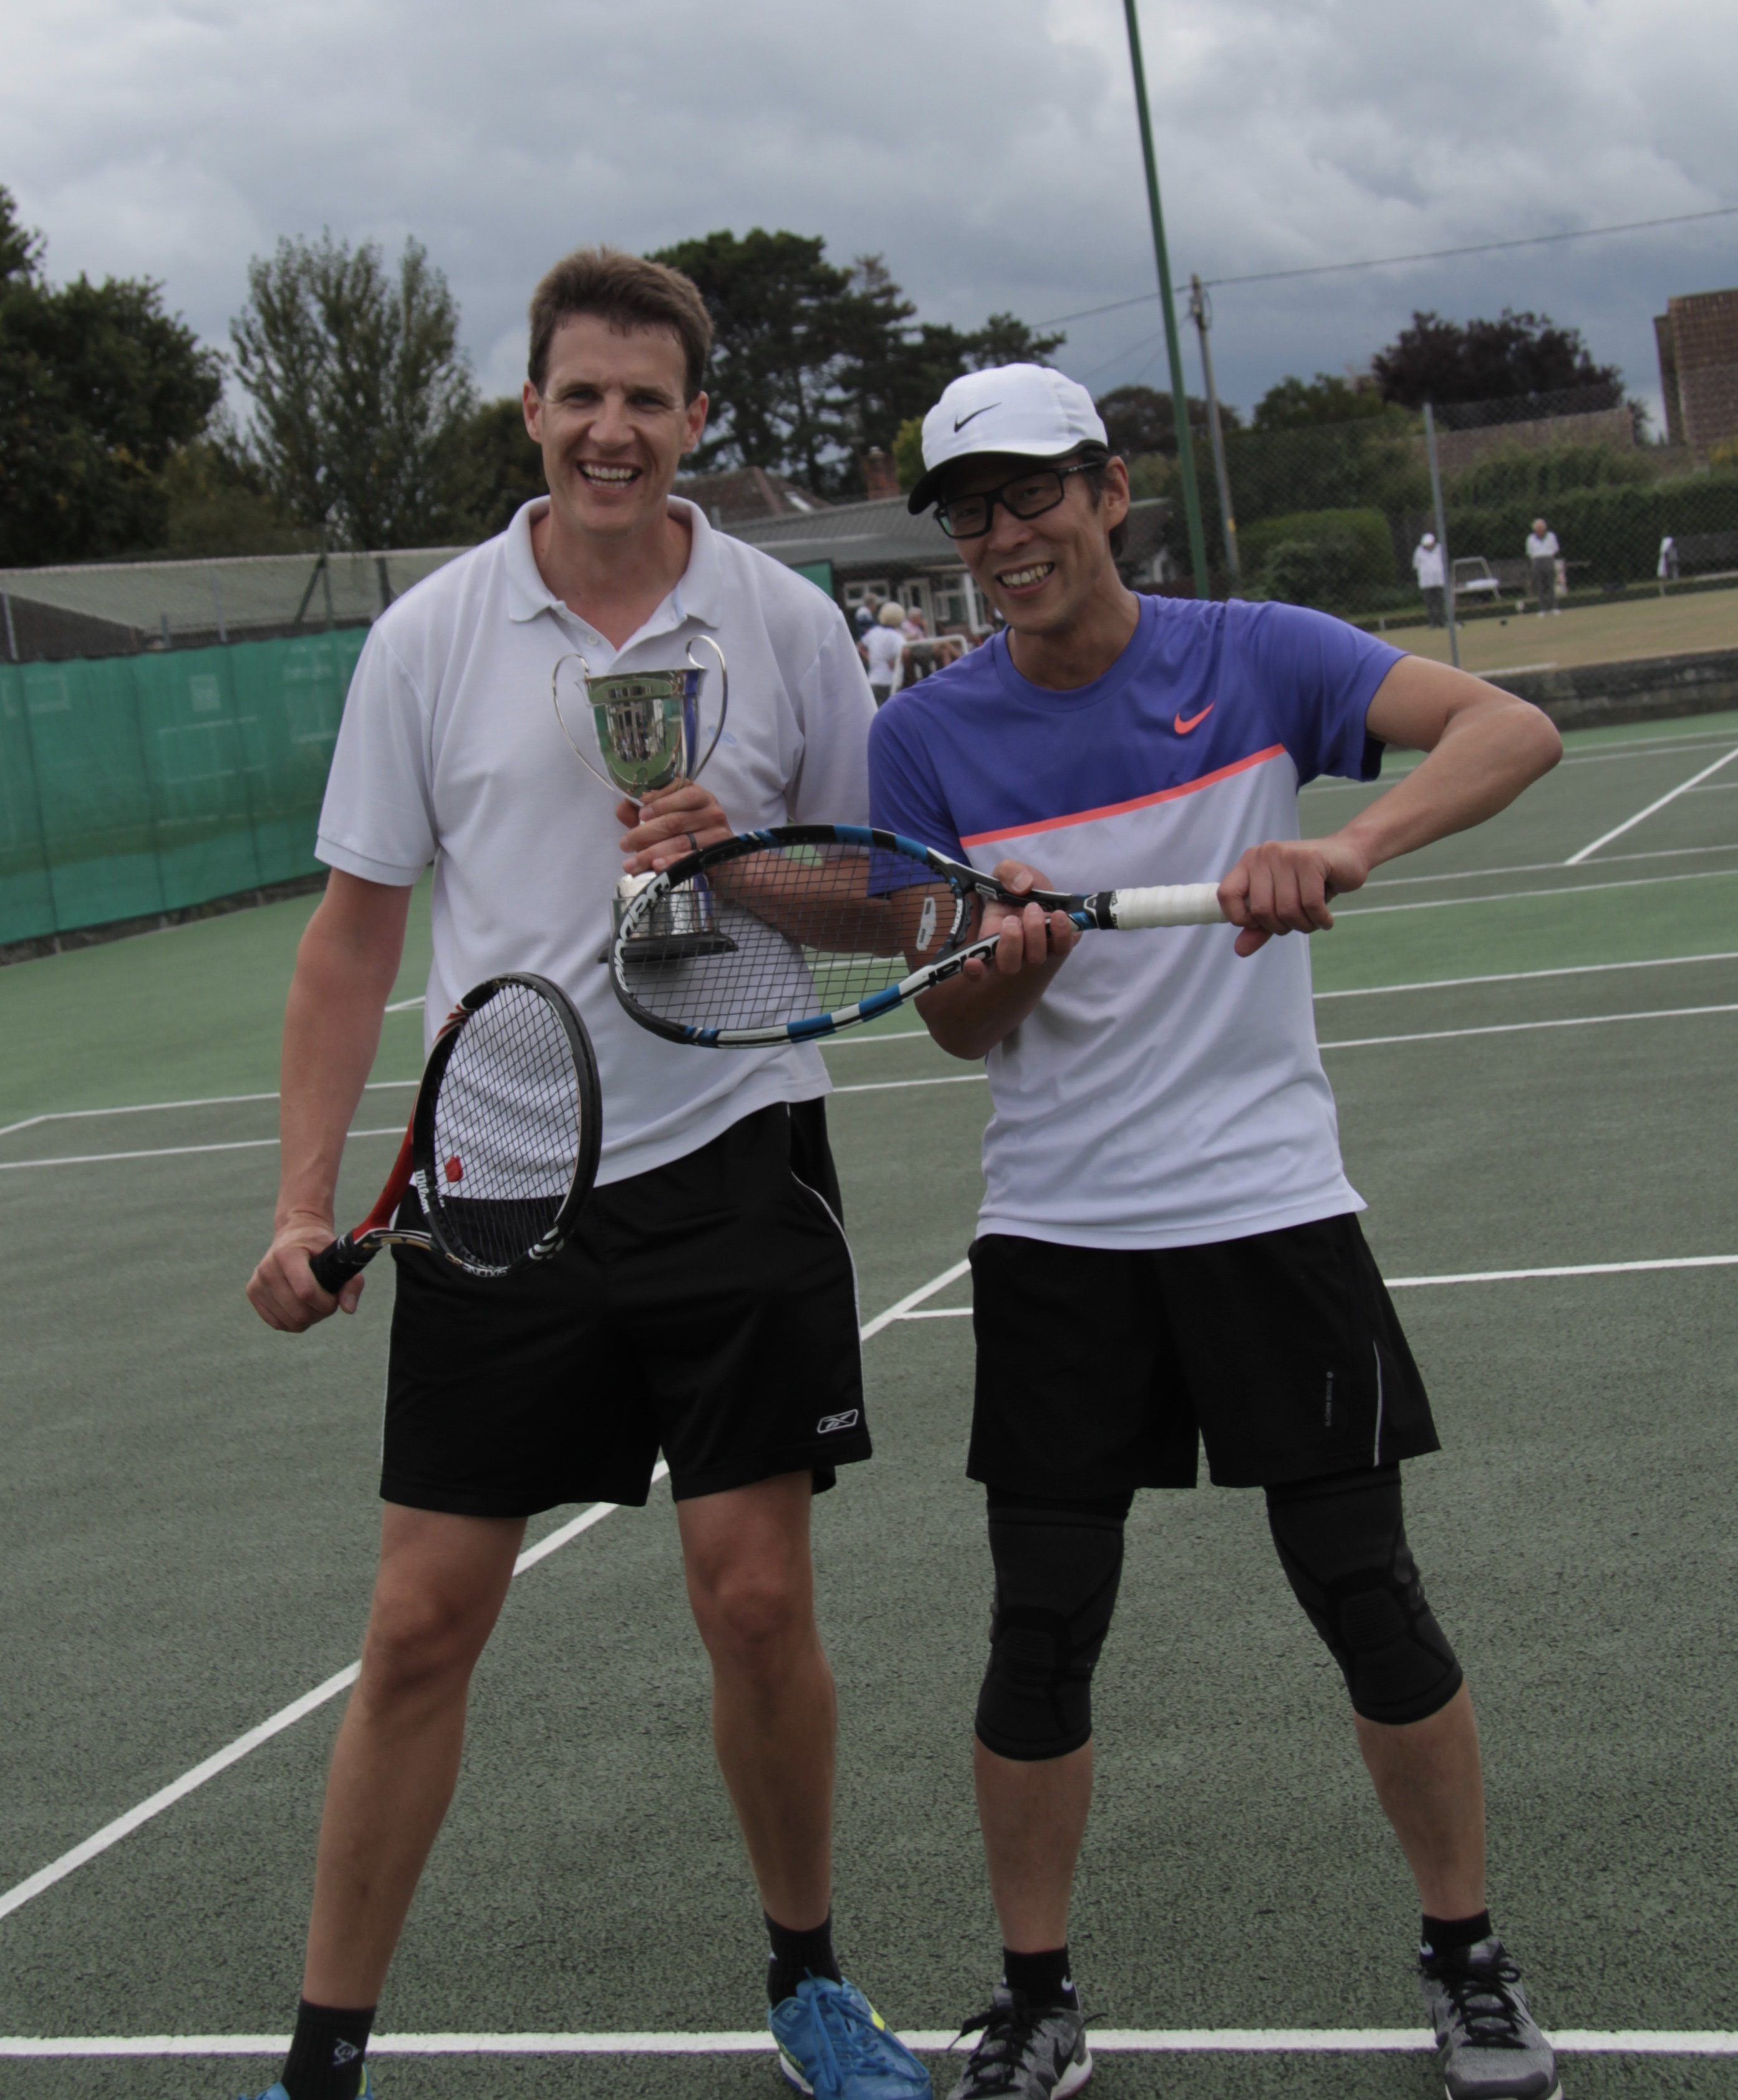 Mens singles winner Christoph (left)